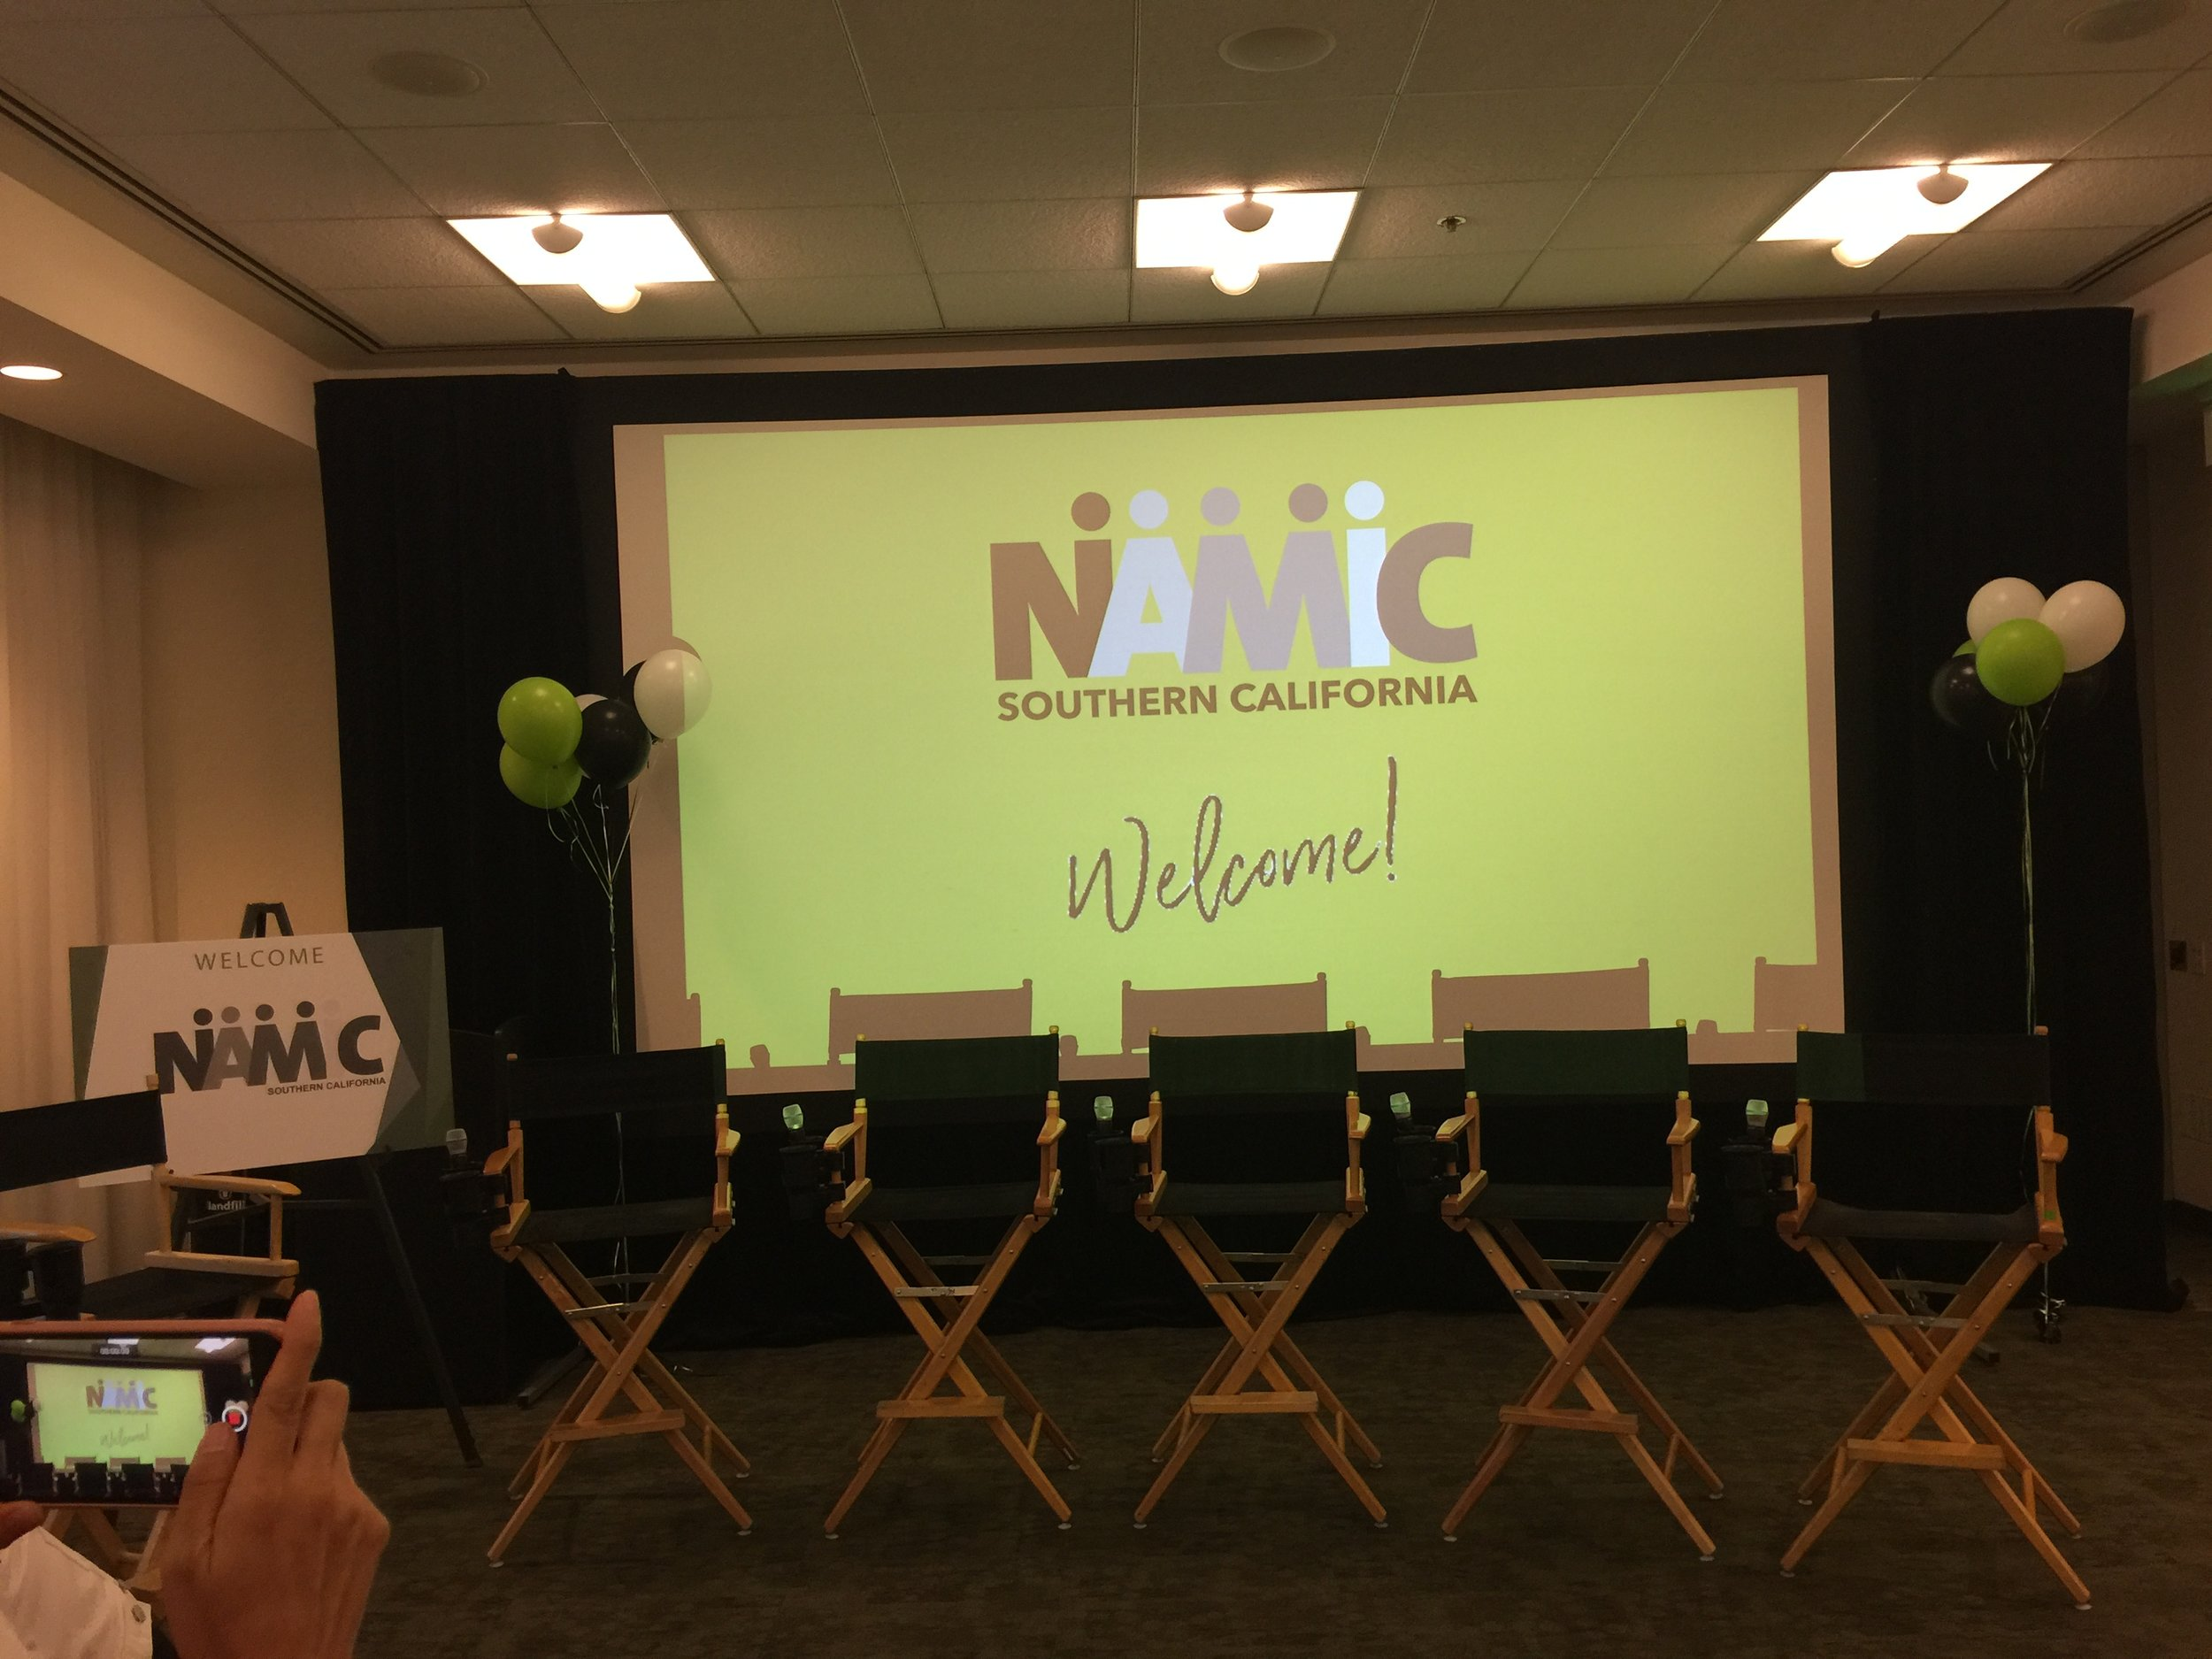 Welcome to NAMIC Southern California. Become a member!